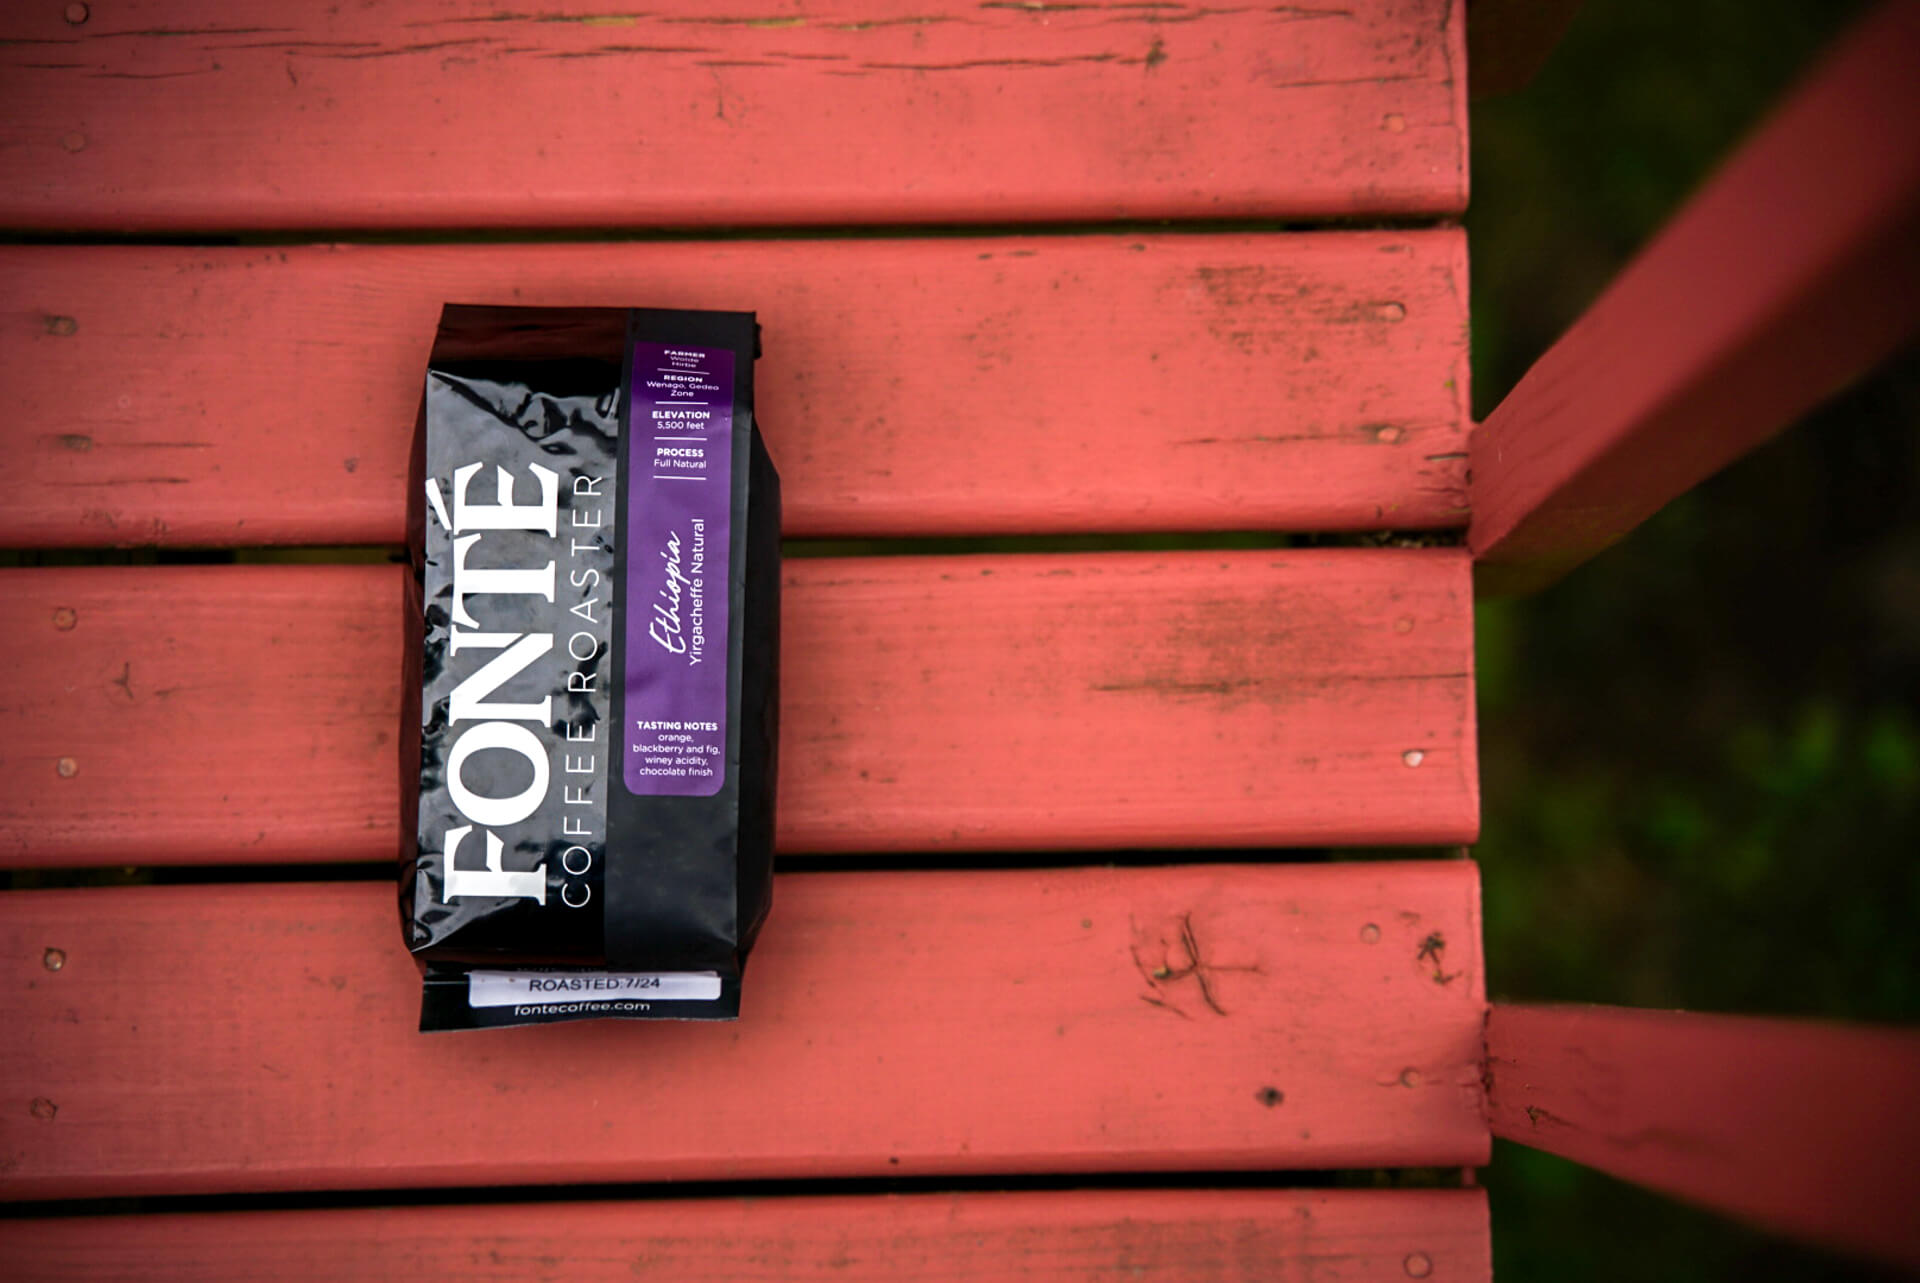 Fonte Coffee Roasters